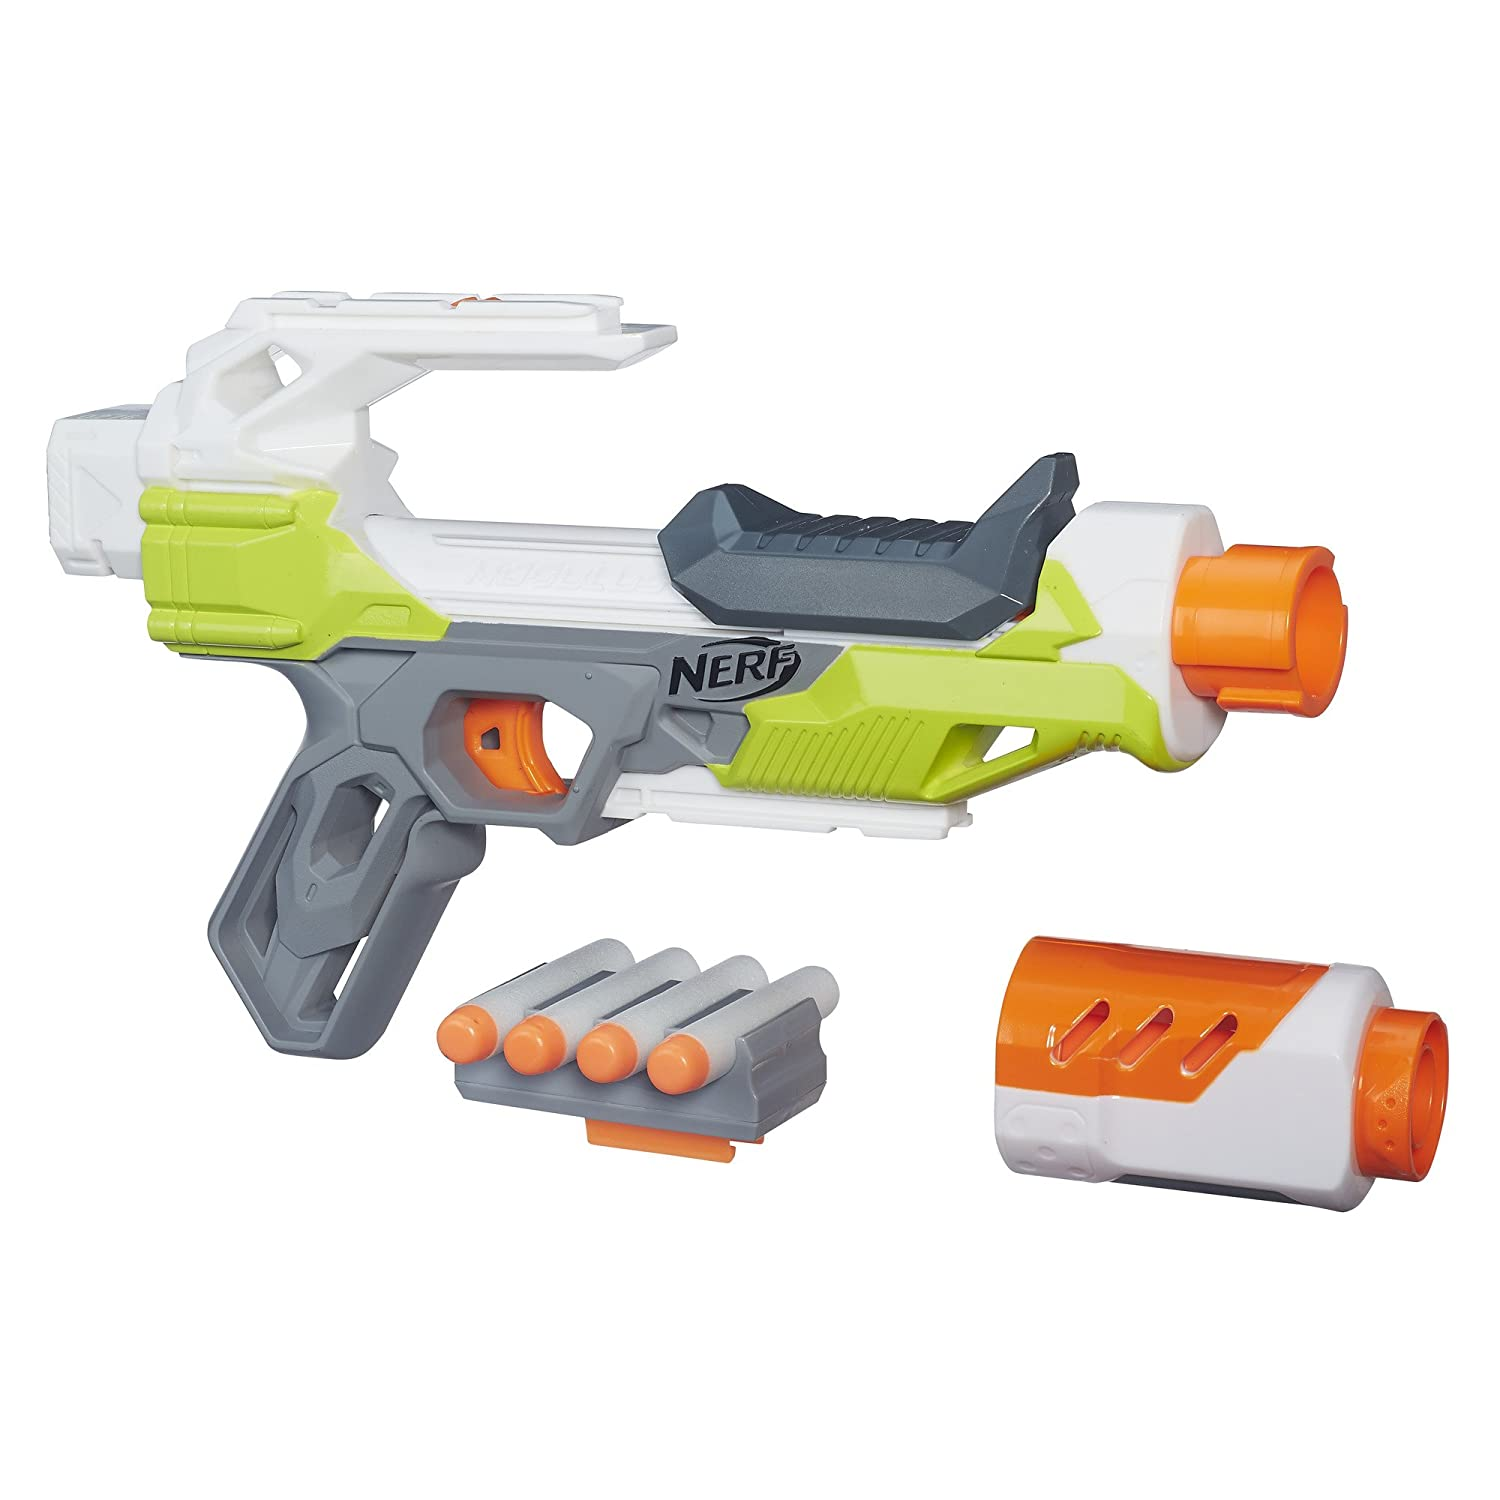 Hasbro Nerf IonFire amazon